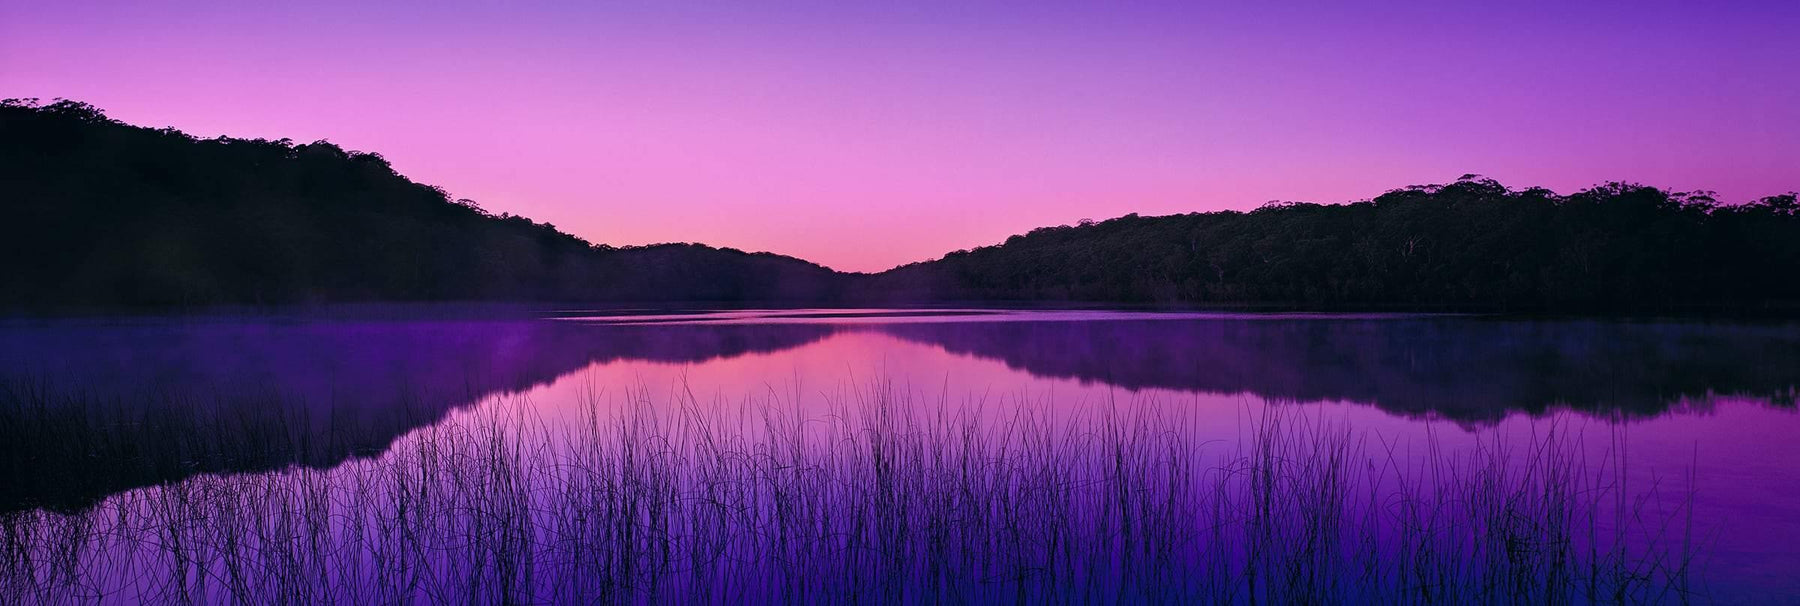 Reeds in the foreground of Lake McKenzie Australia surrounded by brush covered hills during a pink and purple sunrise